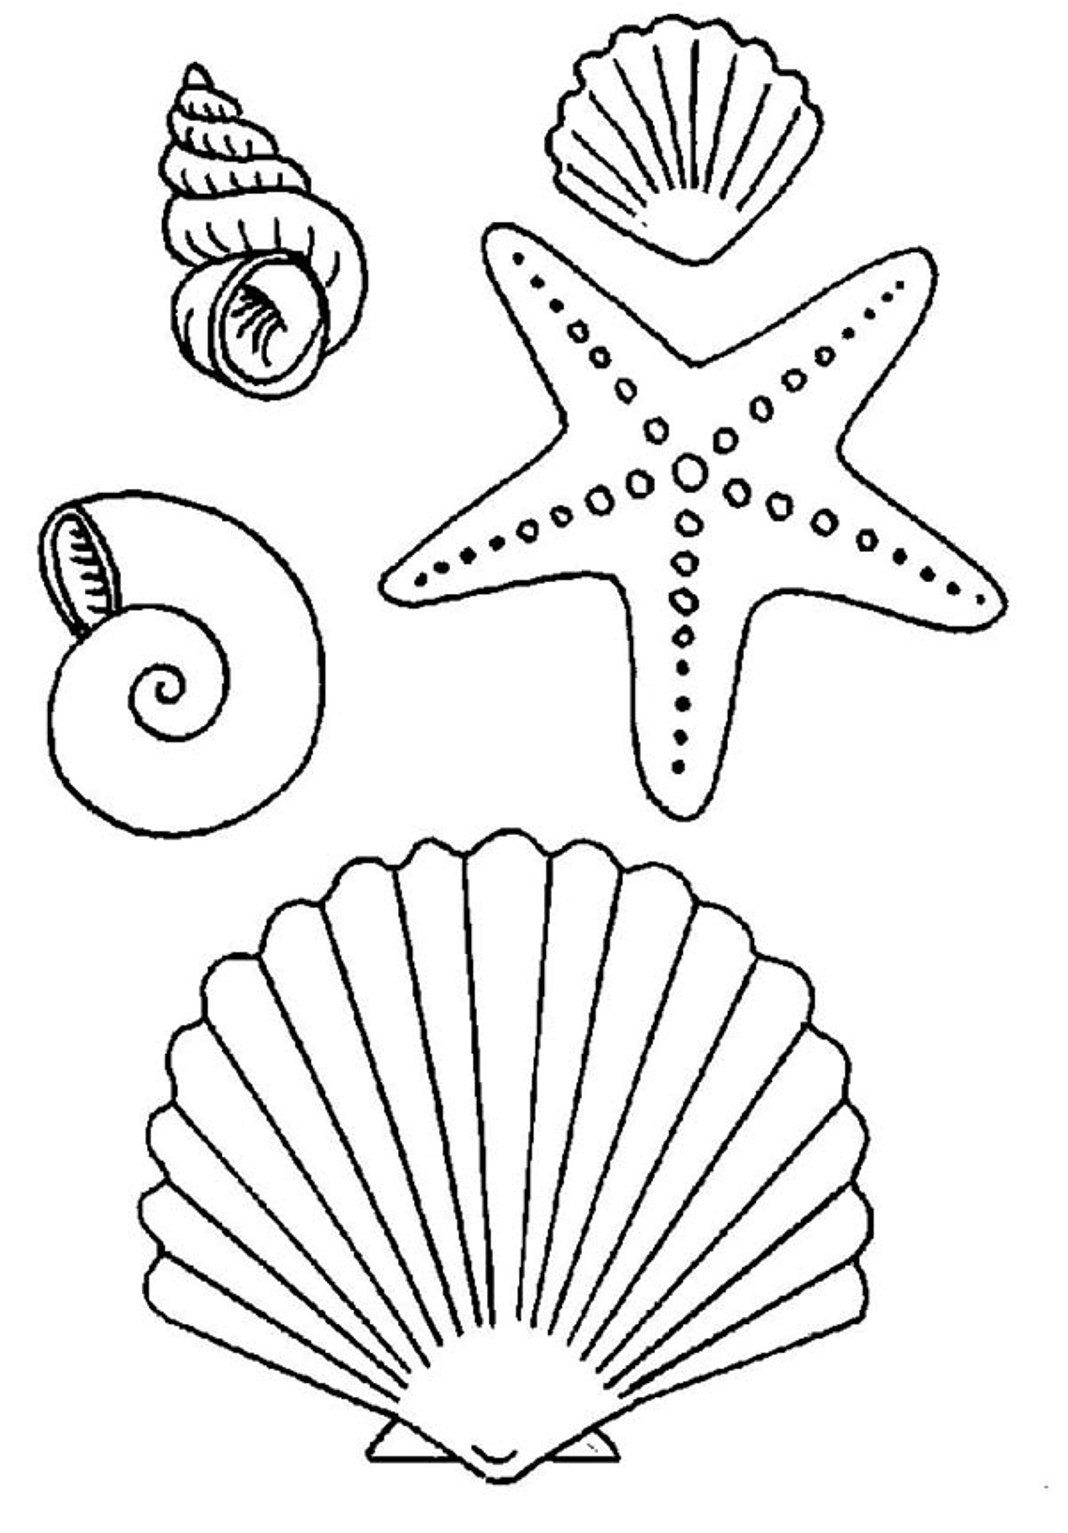 1068x1533 Astounding Starfish Coloring Pages Adult Cartoon Intermediate